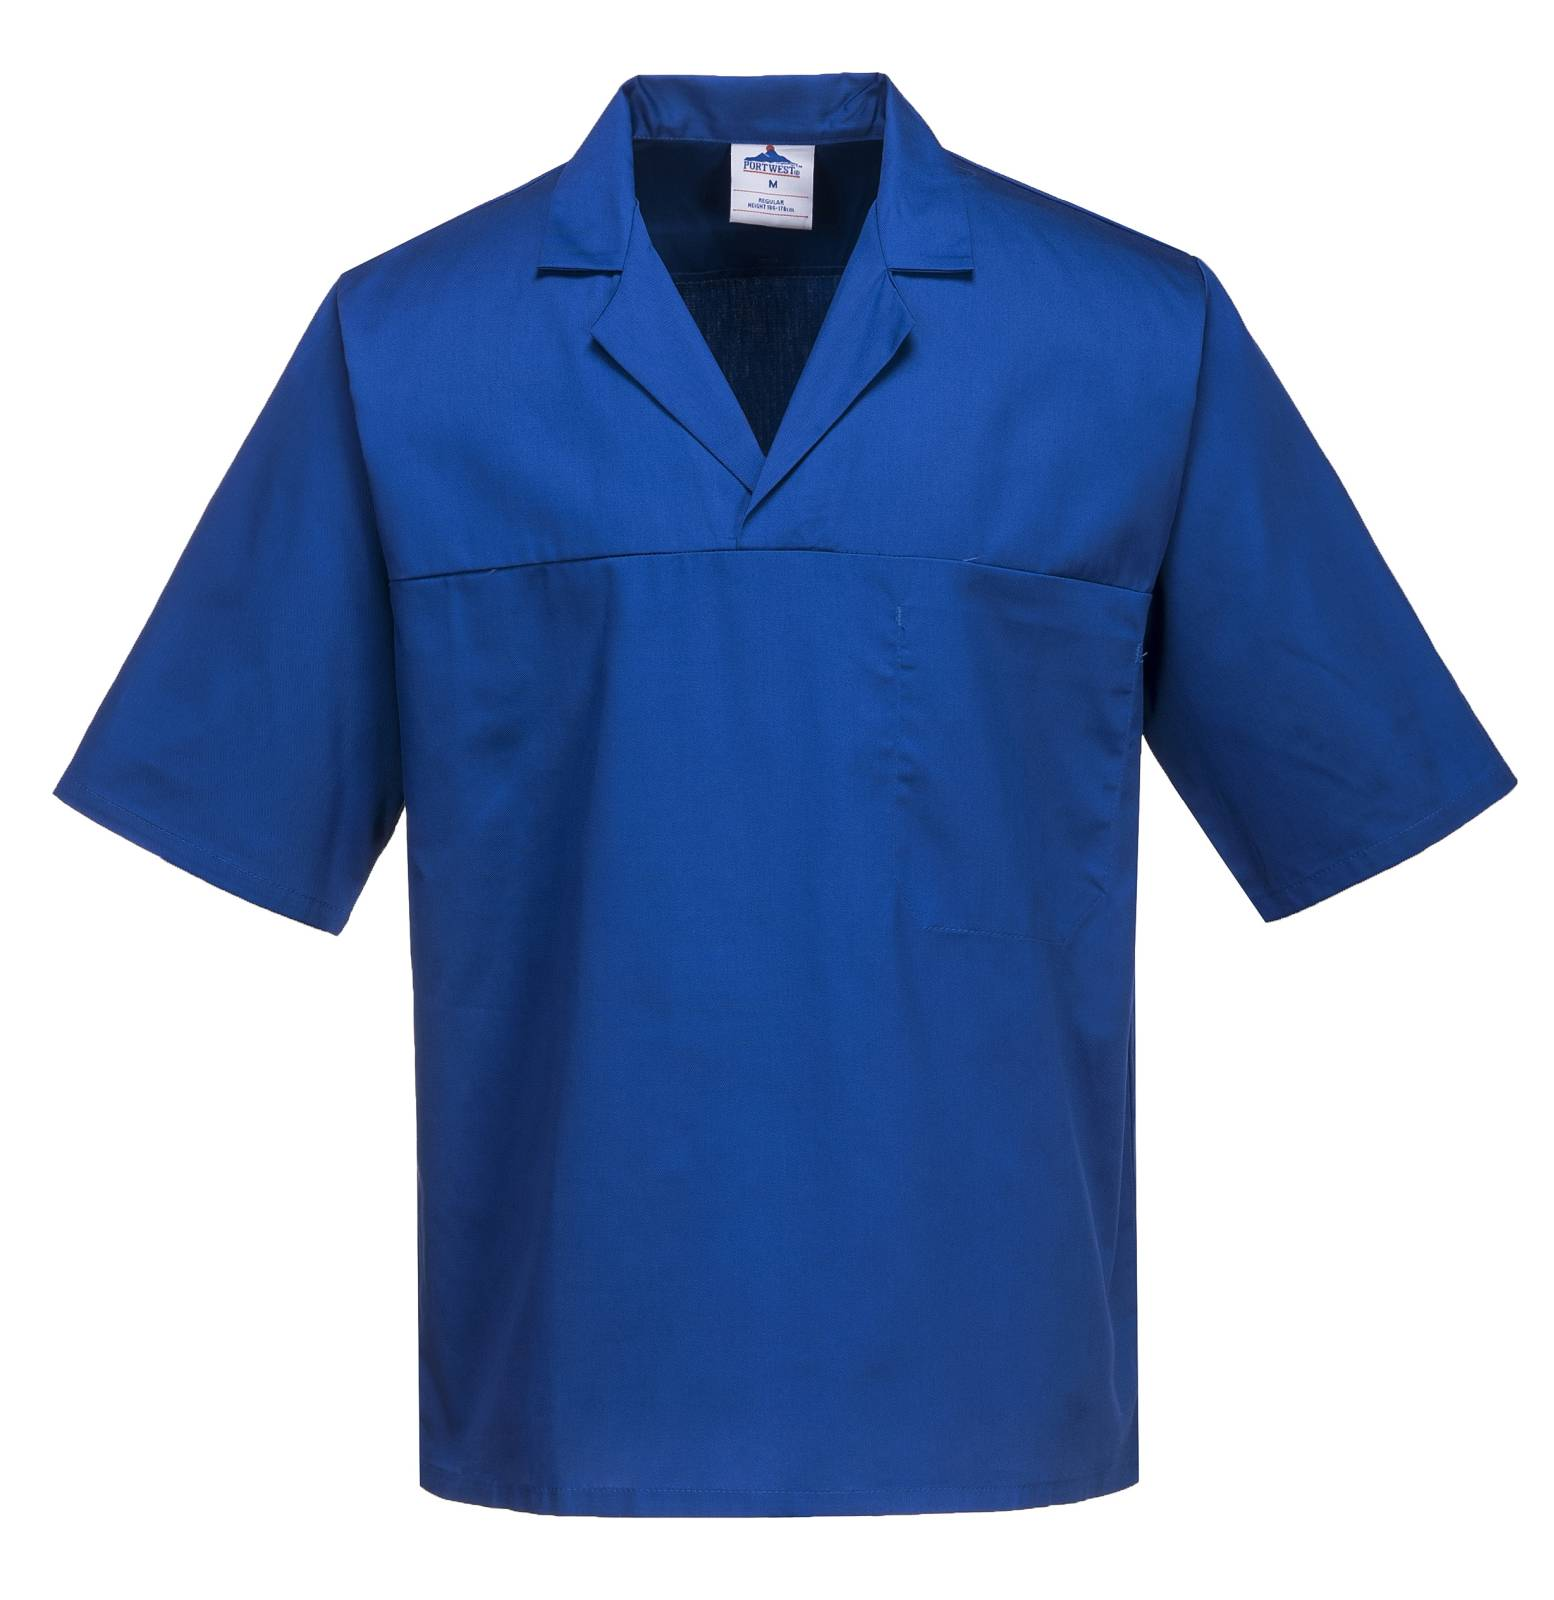 Portwest Shirts 2209 koningsblauw(RB)